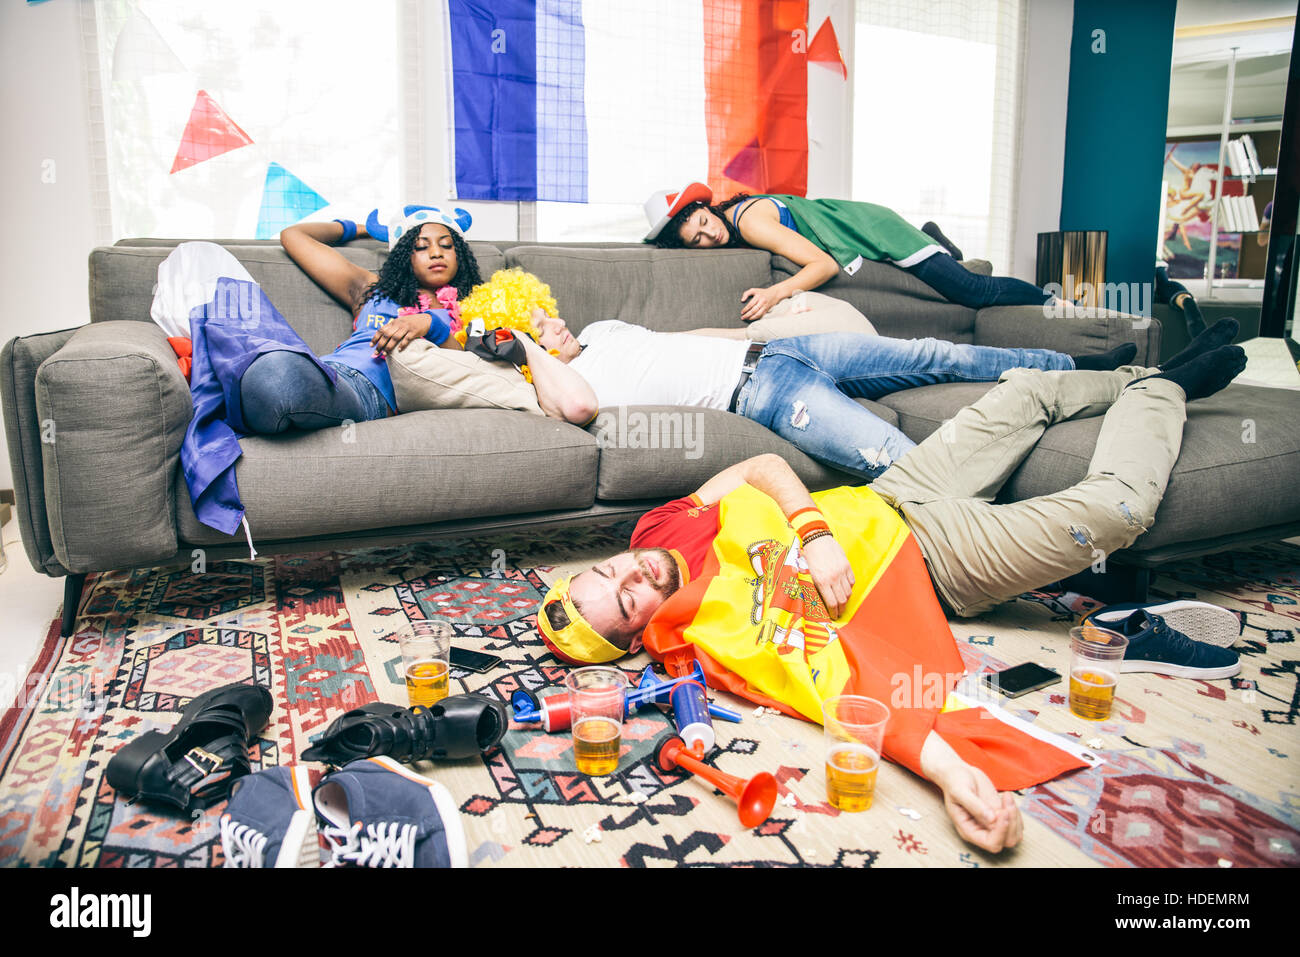 group of friends sleeping in a living room after party drunk stock